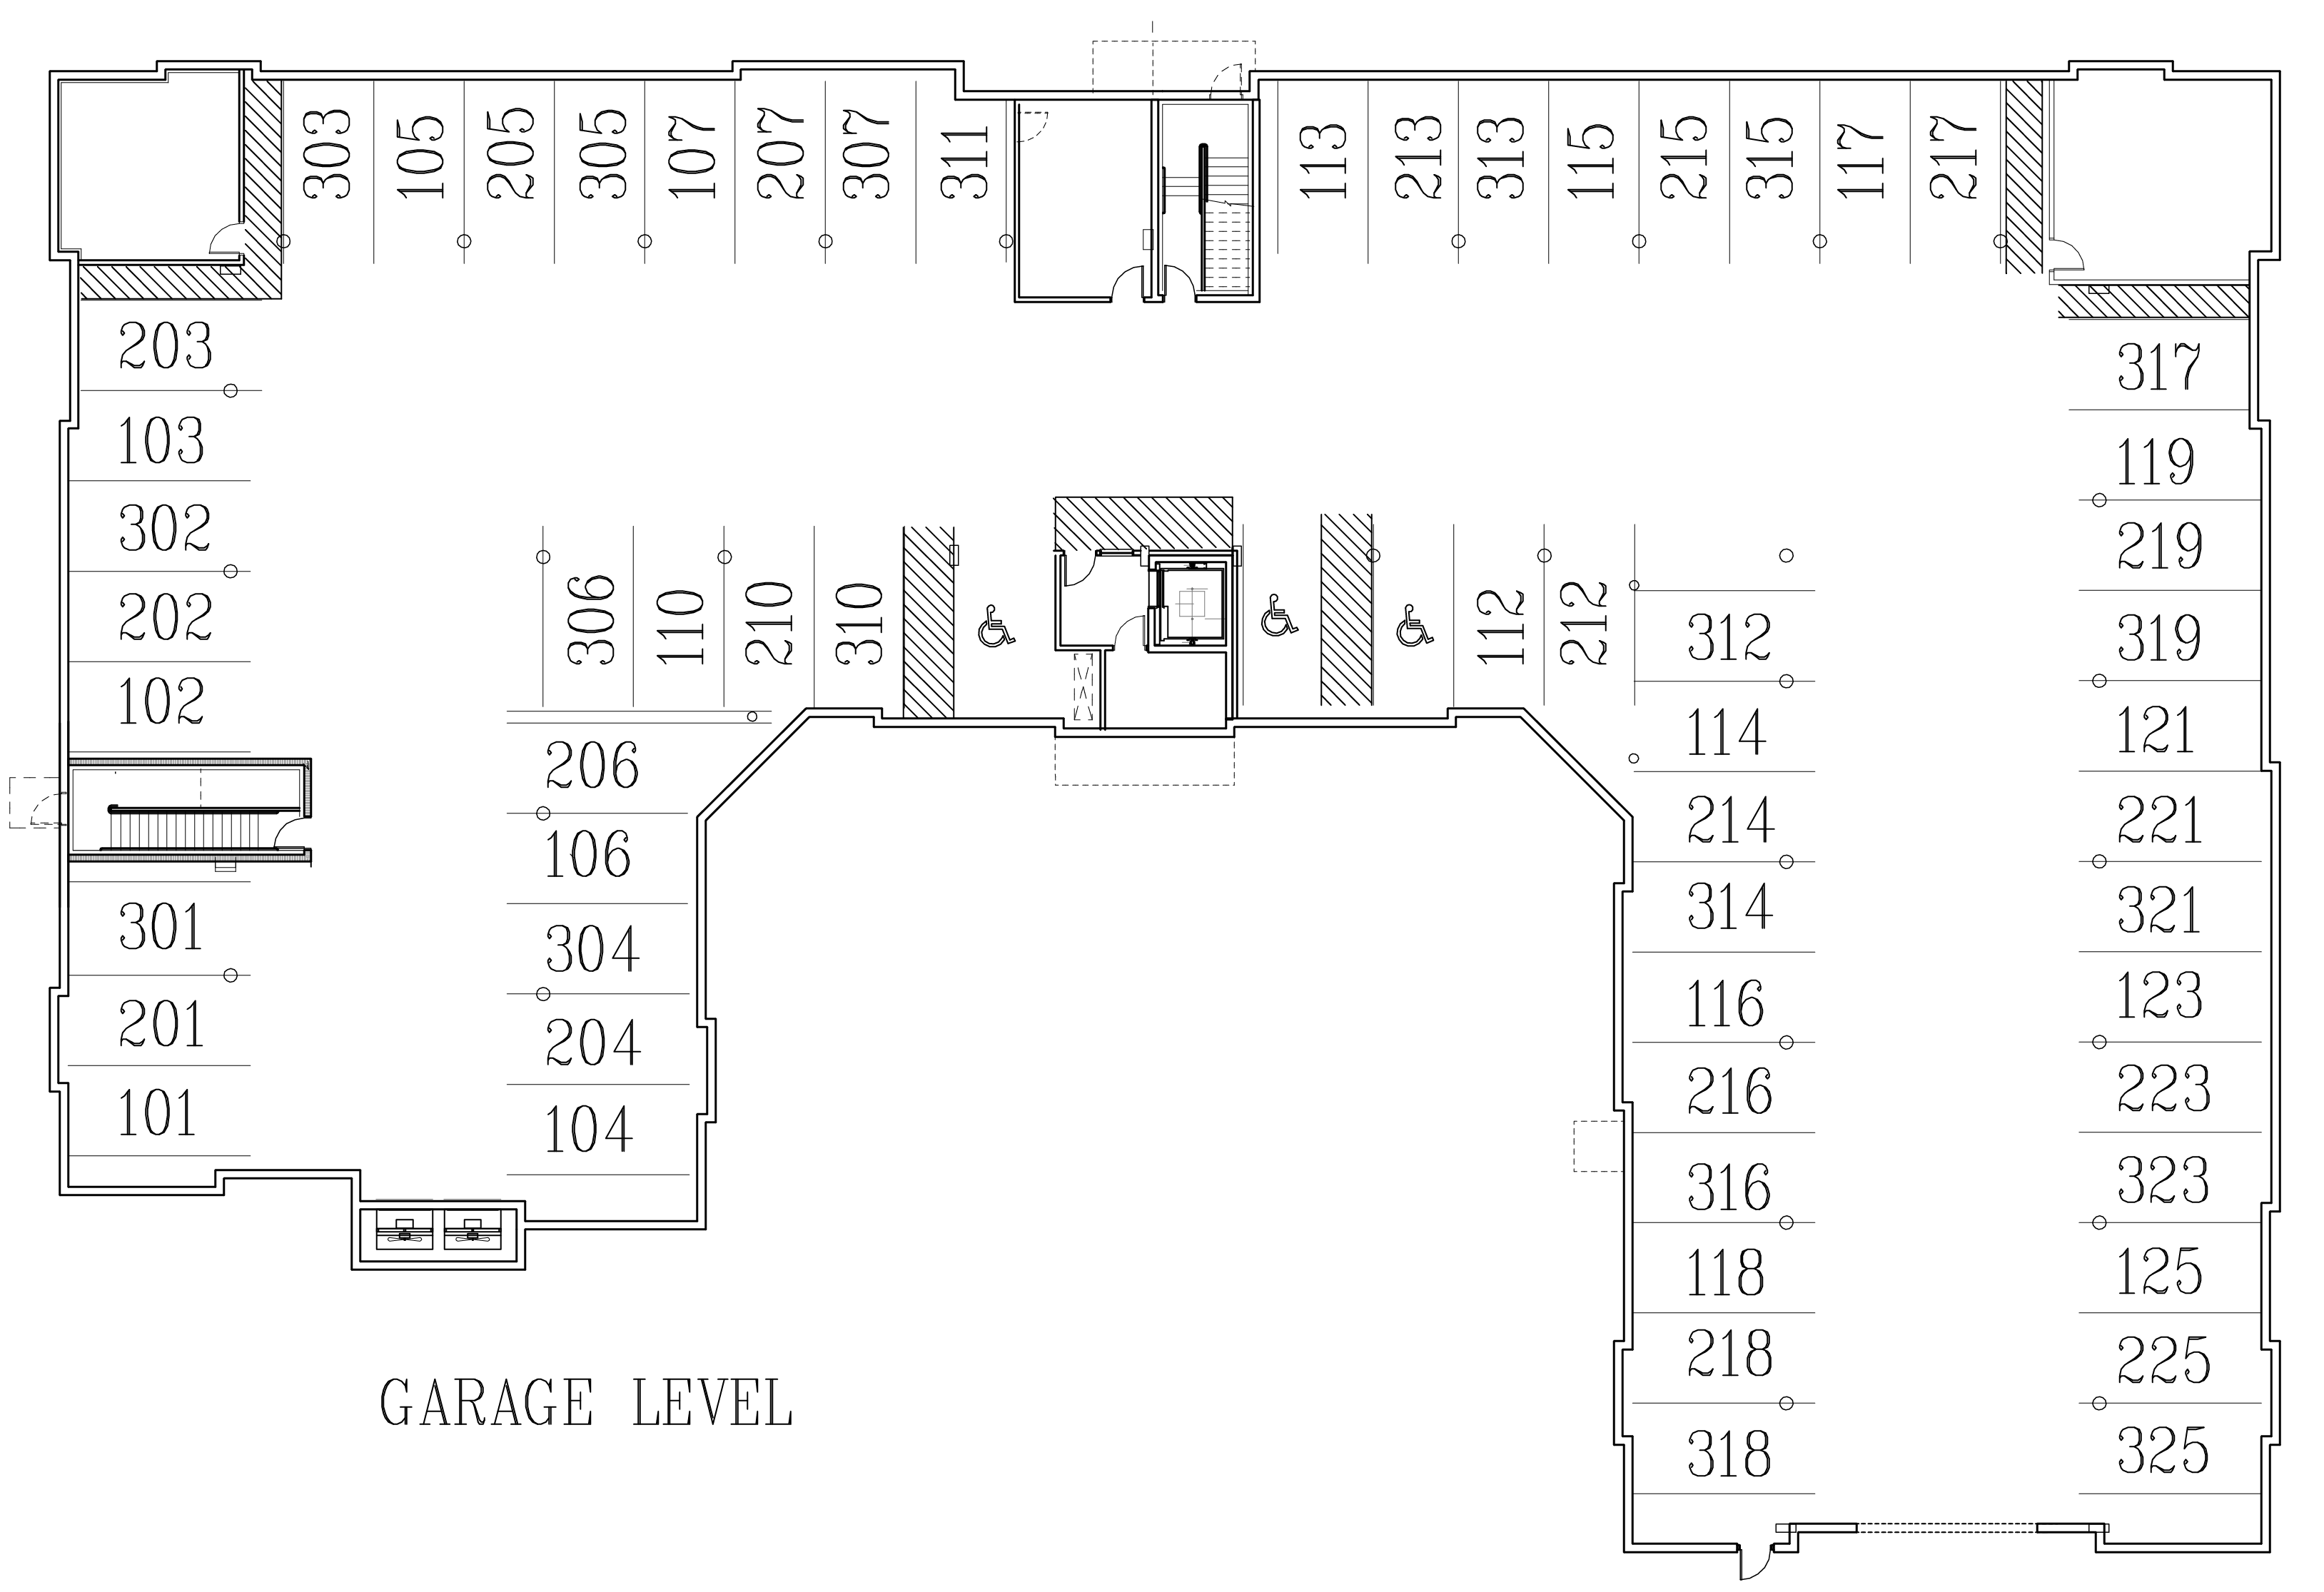 Image of building layout for garage floor.